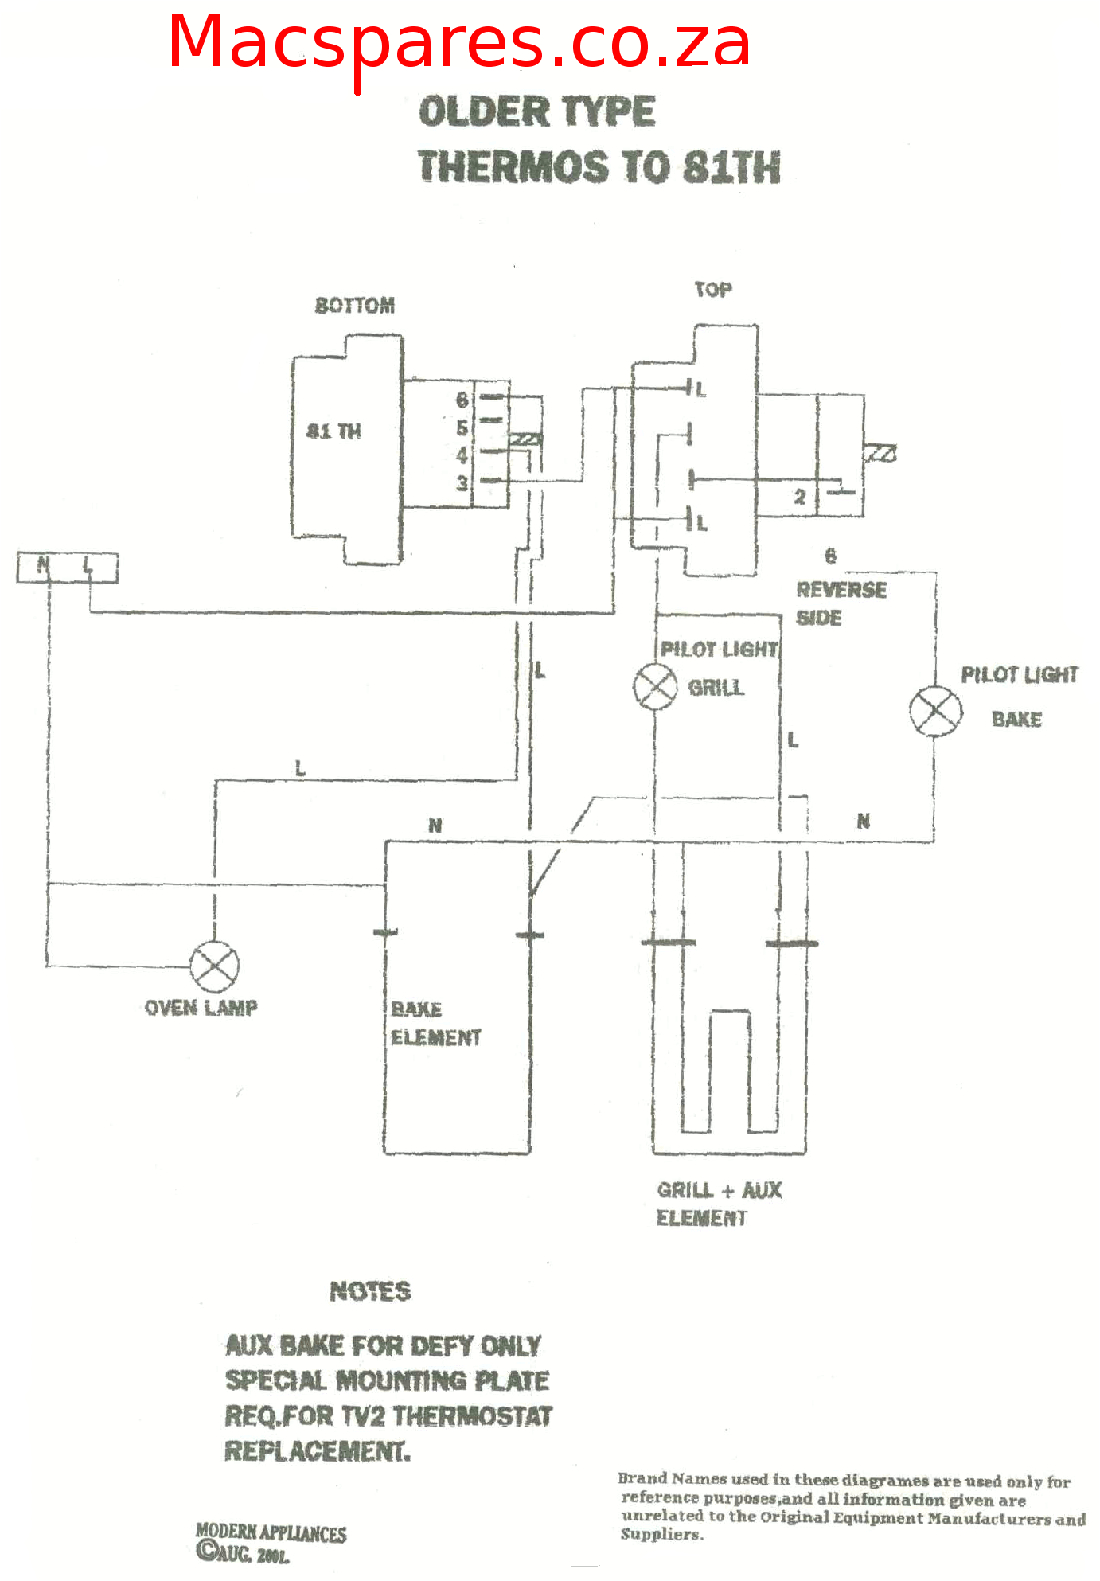 Wiring Diagram for Electric Oven and Hob Wiring Diagrams Stoves Switches and thermostats Macspares